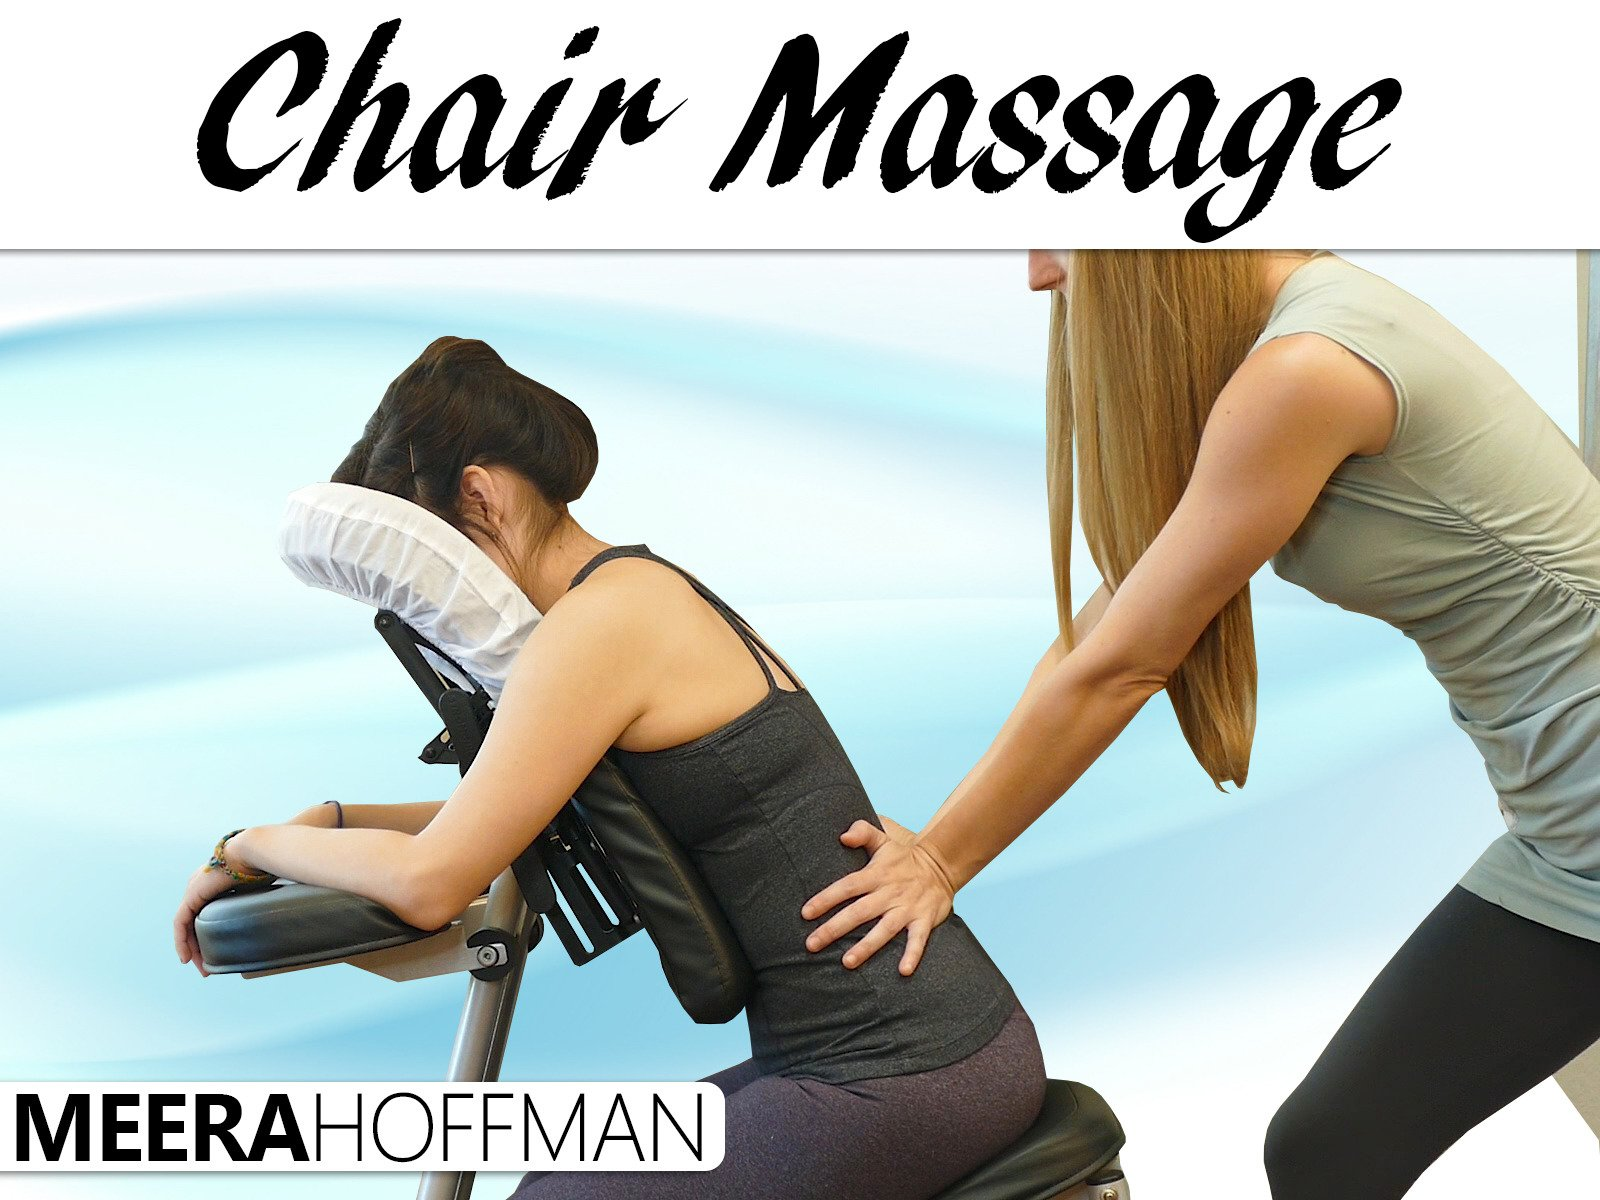 Chair Massage - Season 1